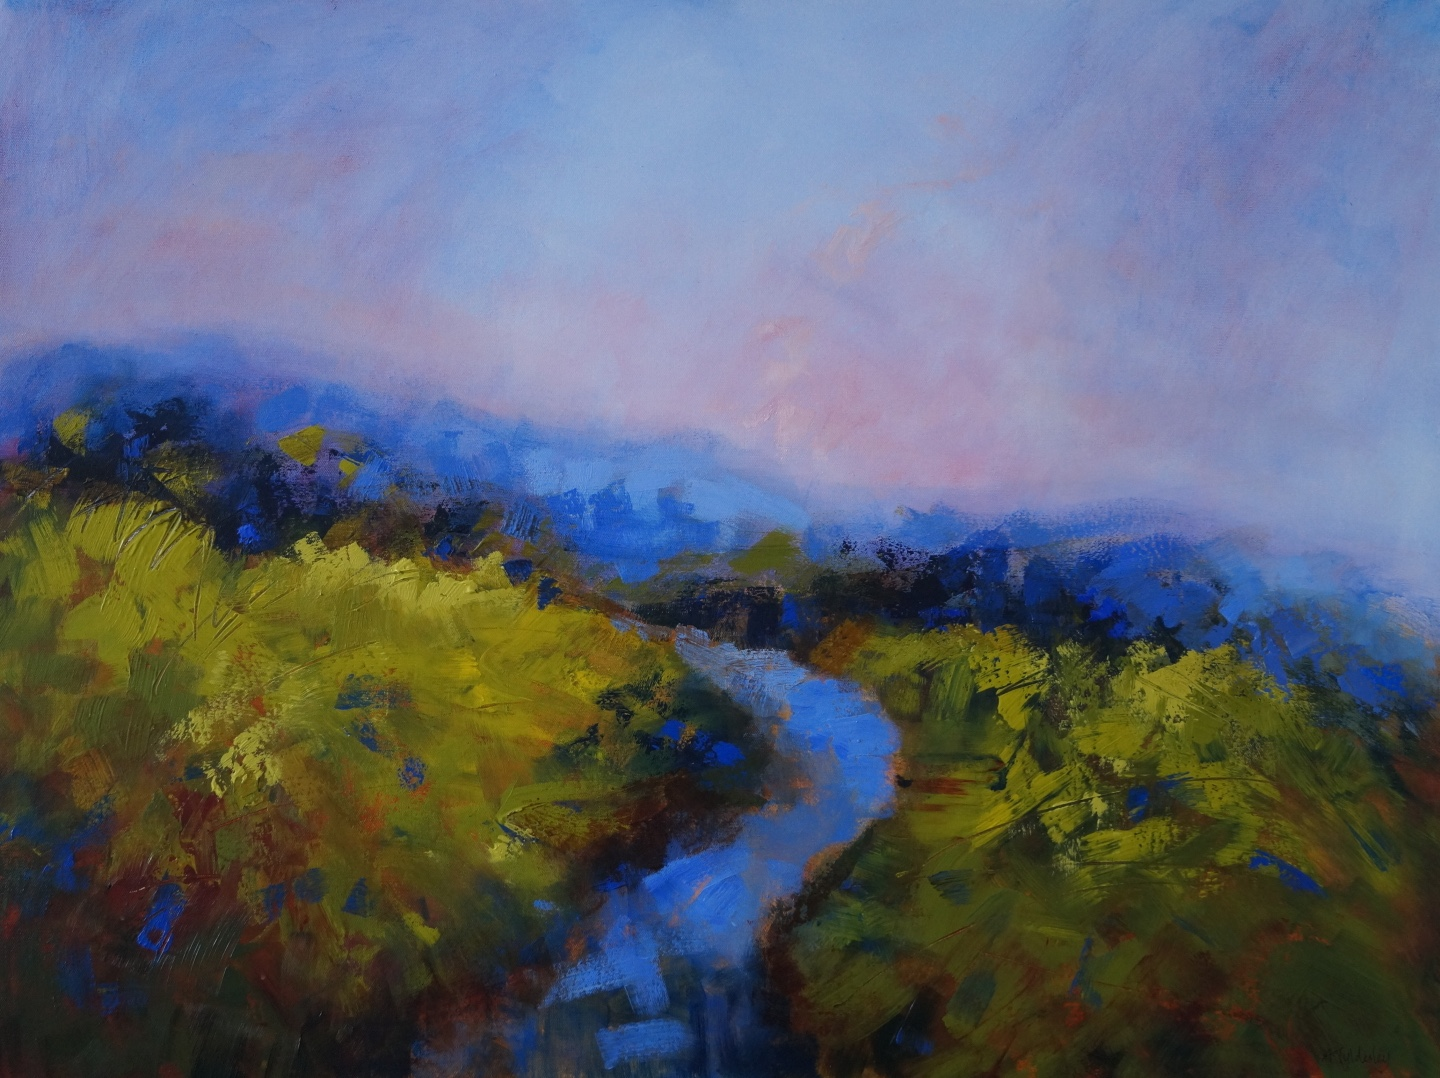 Blue River towards Lilac Sky 104 x 79cm